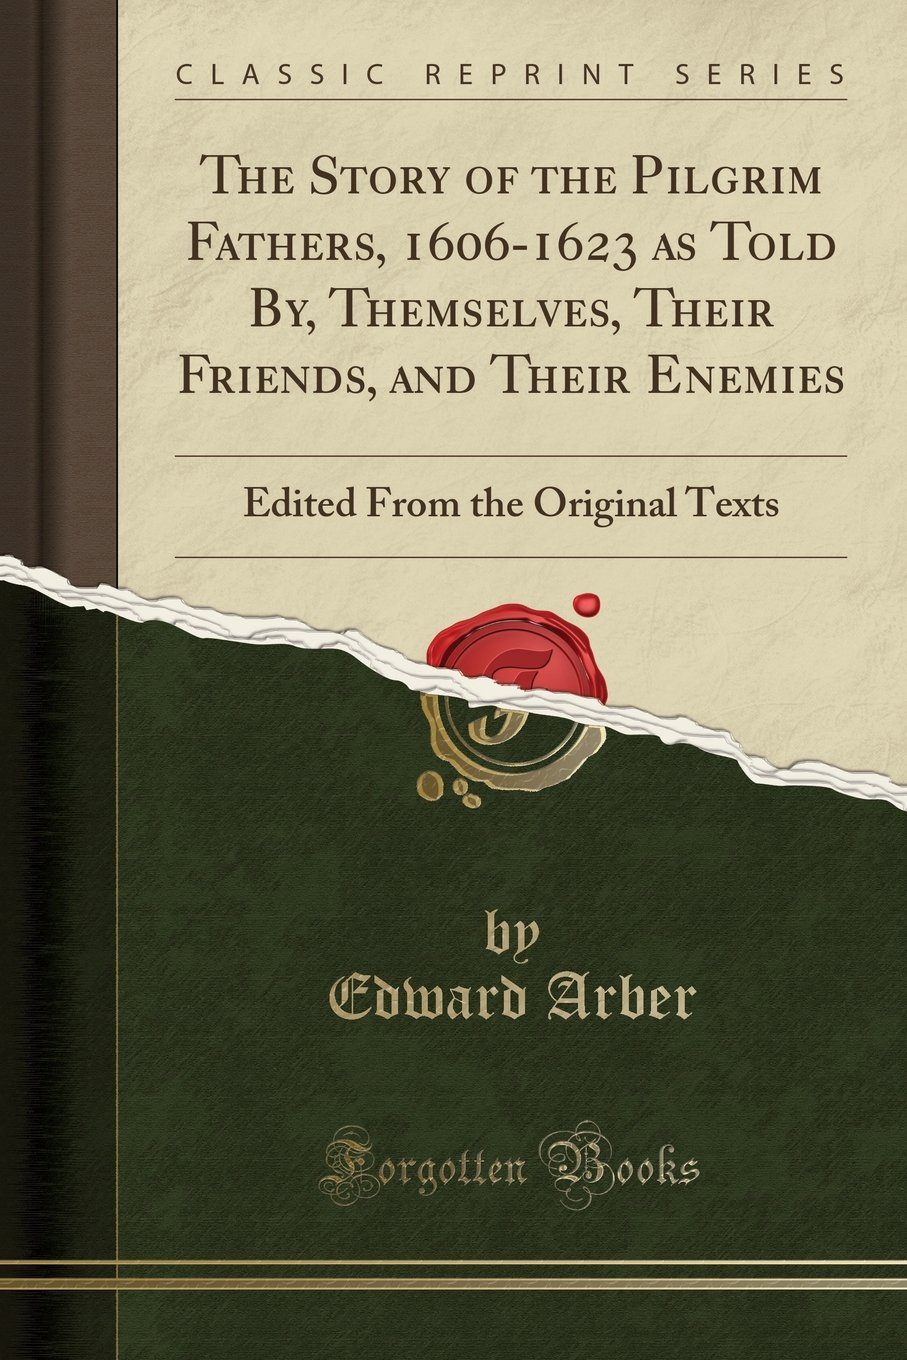 Download The Story of the Pilgrim Fathers, 1606-1623 as Told By, Themselves, Their Friends, and Their Enemies: Edited From the Original Texts (Classic Reprint) pdf epub